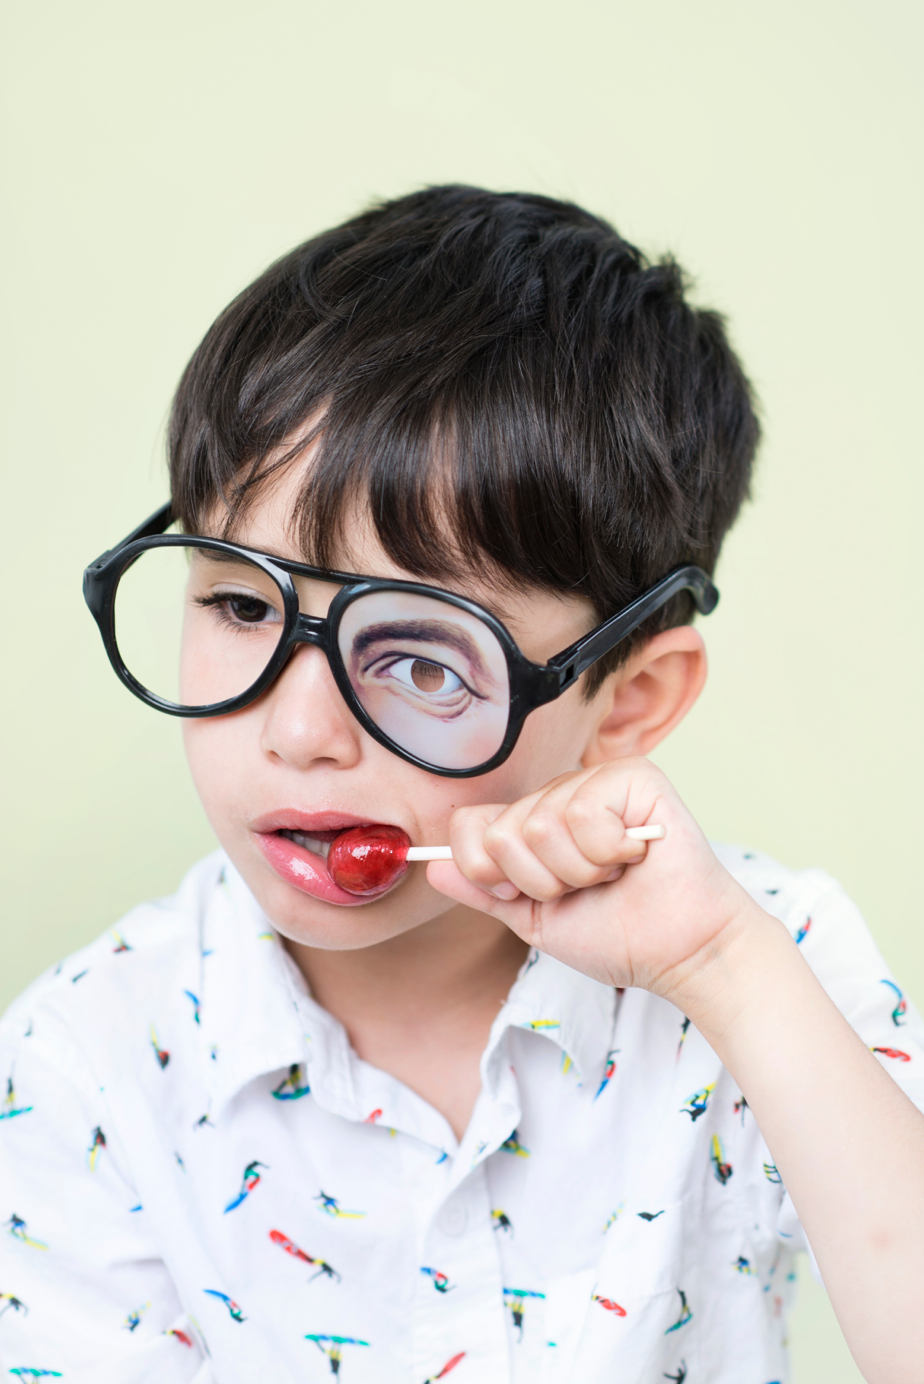 boy with silly glasses eating lollipop